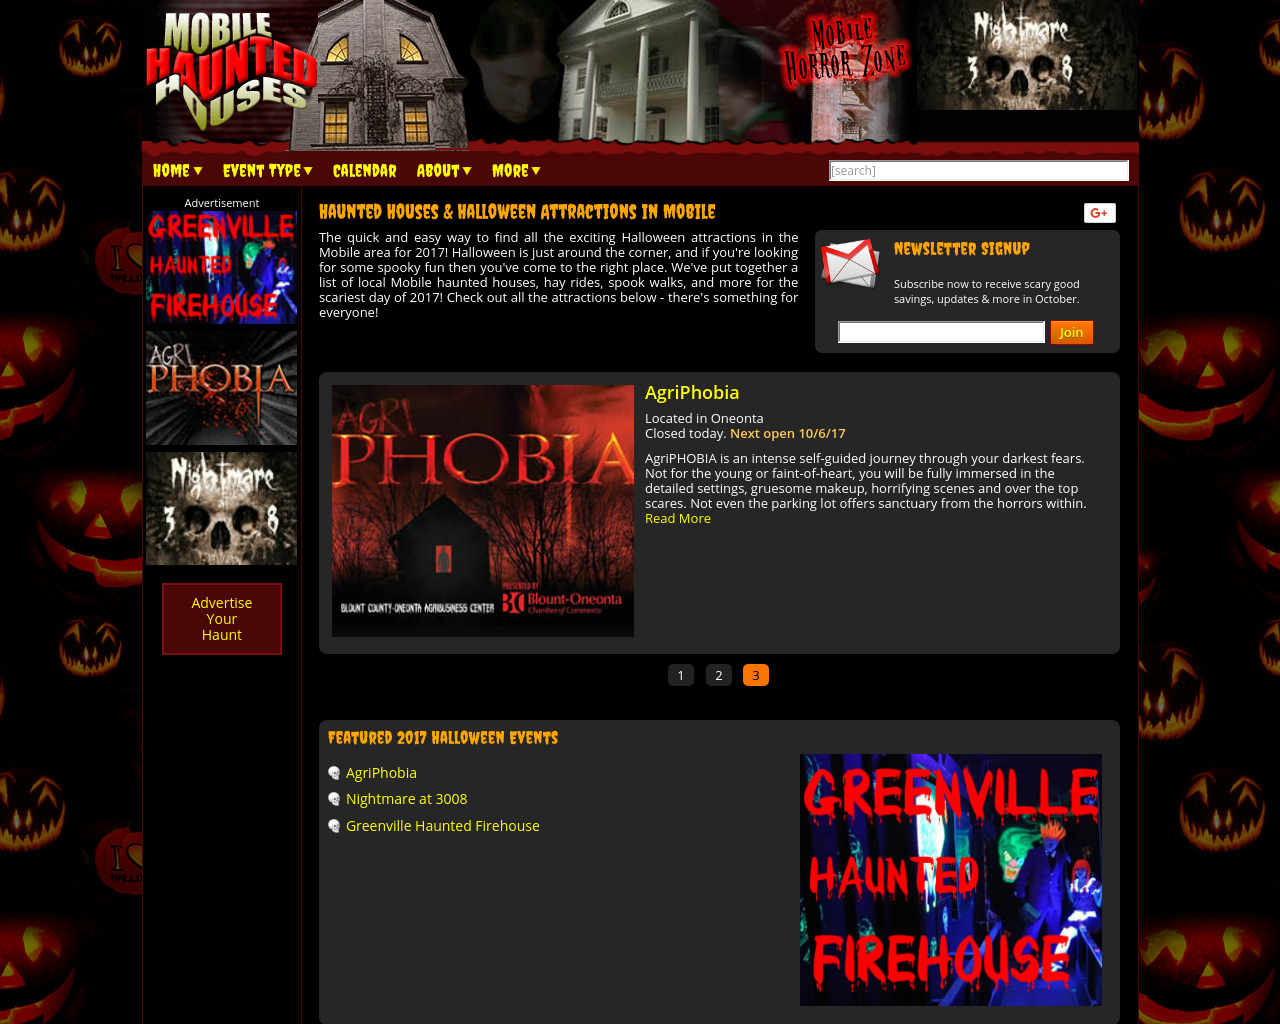 Mobile-Haunted-Houses-Advertising-Reviews-Pricing